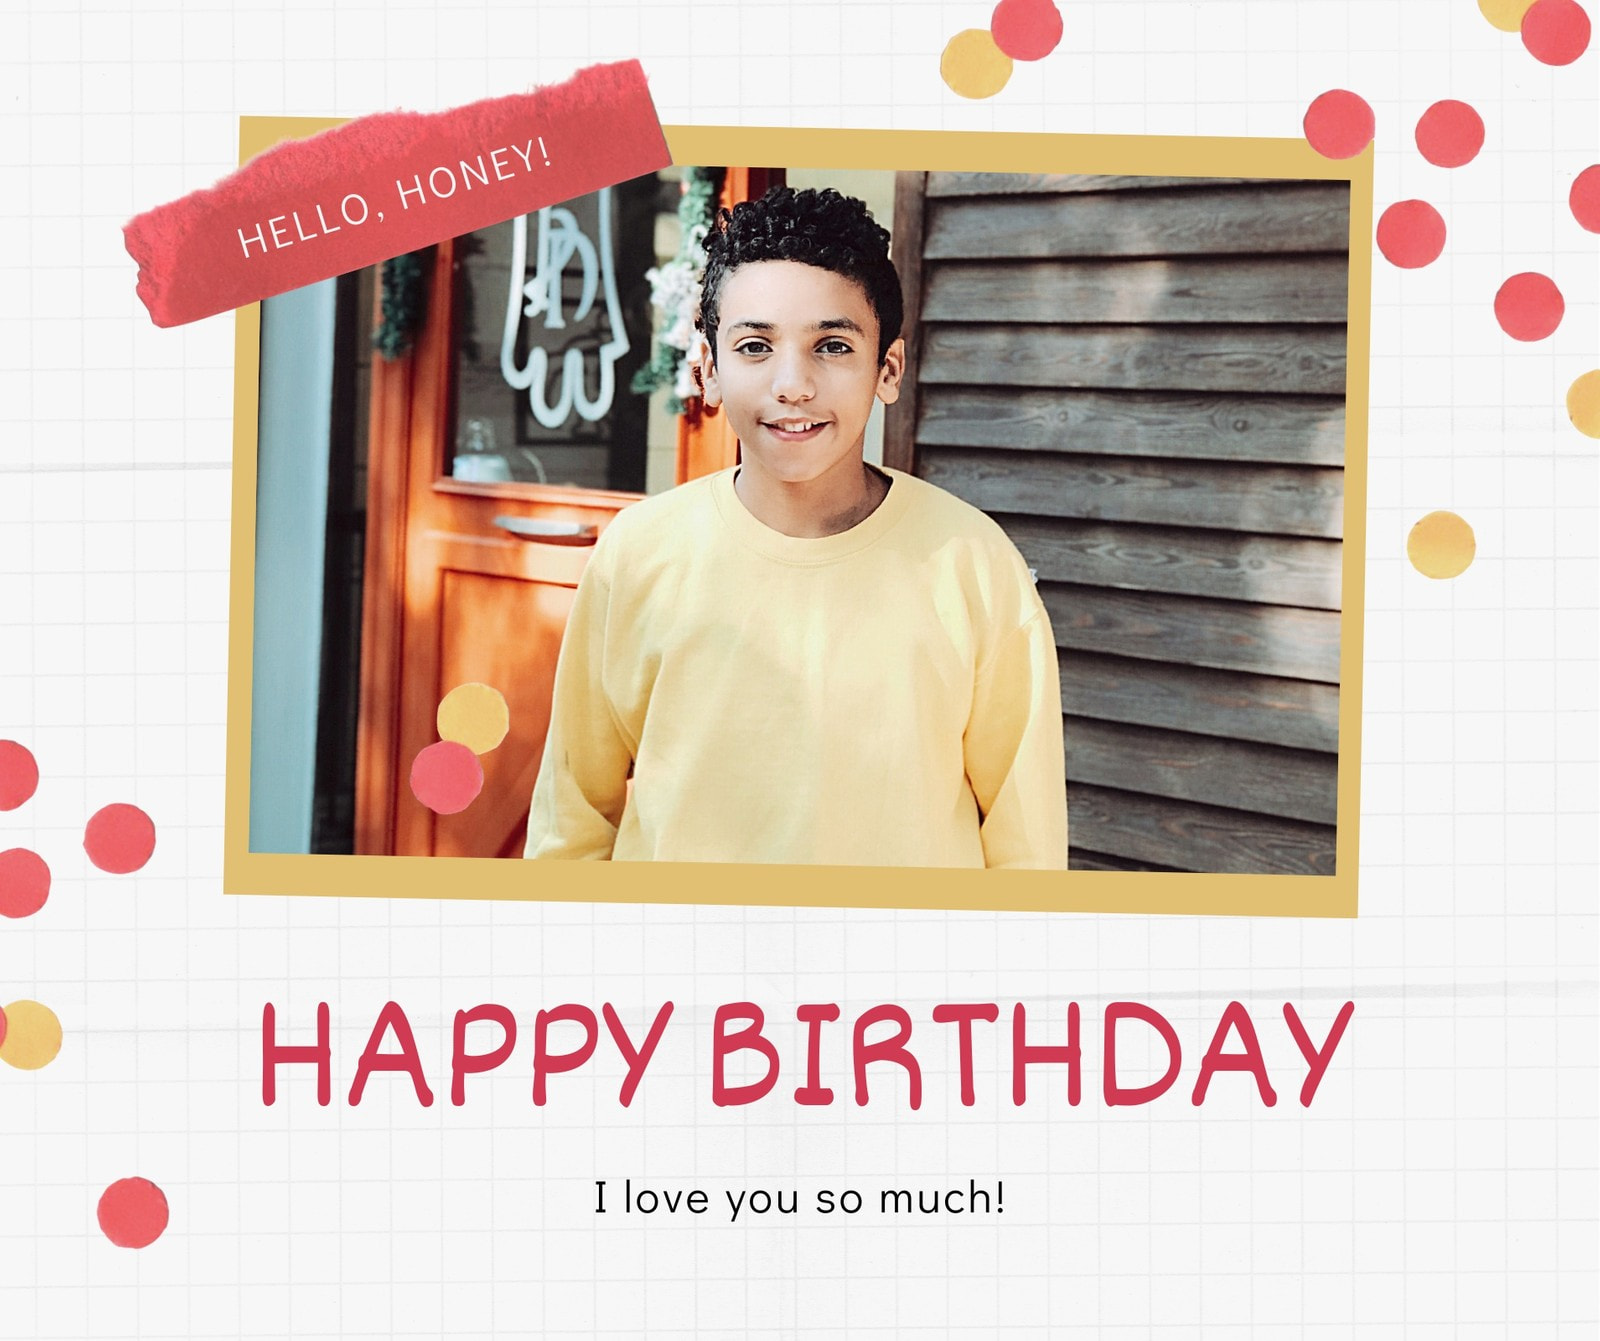 Red and Gold Boy Modern Scrapbook General Greeting Birthday Facebook Post